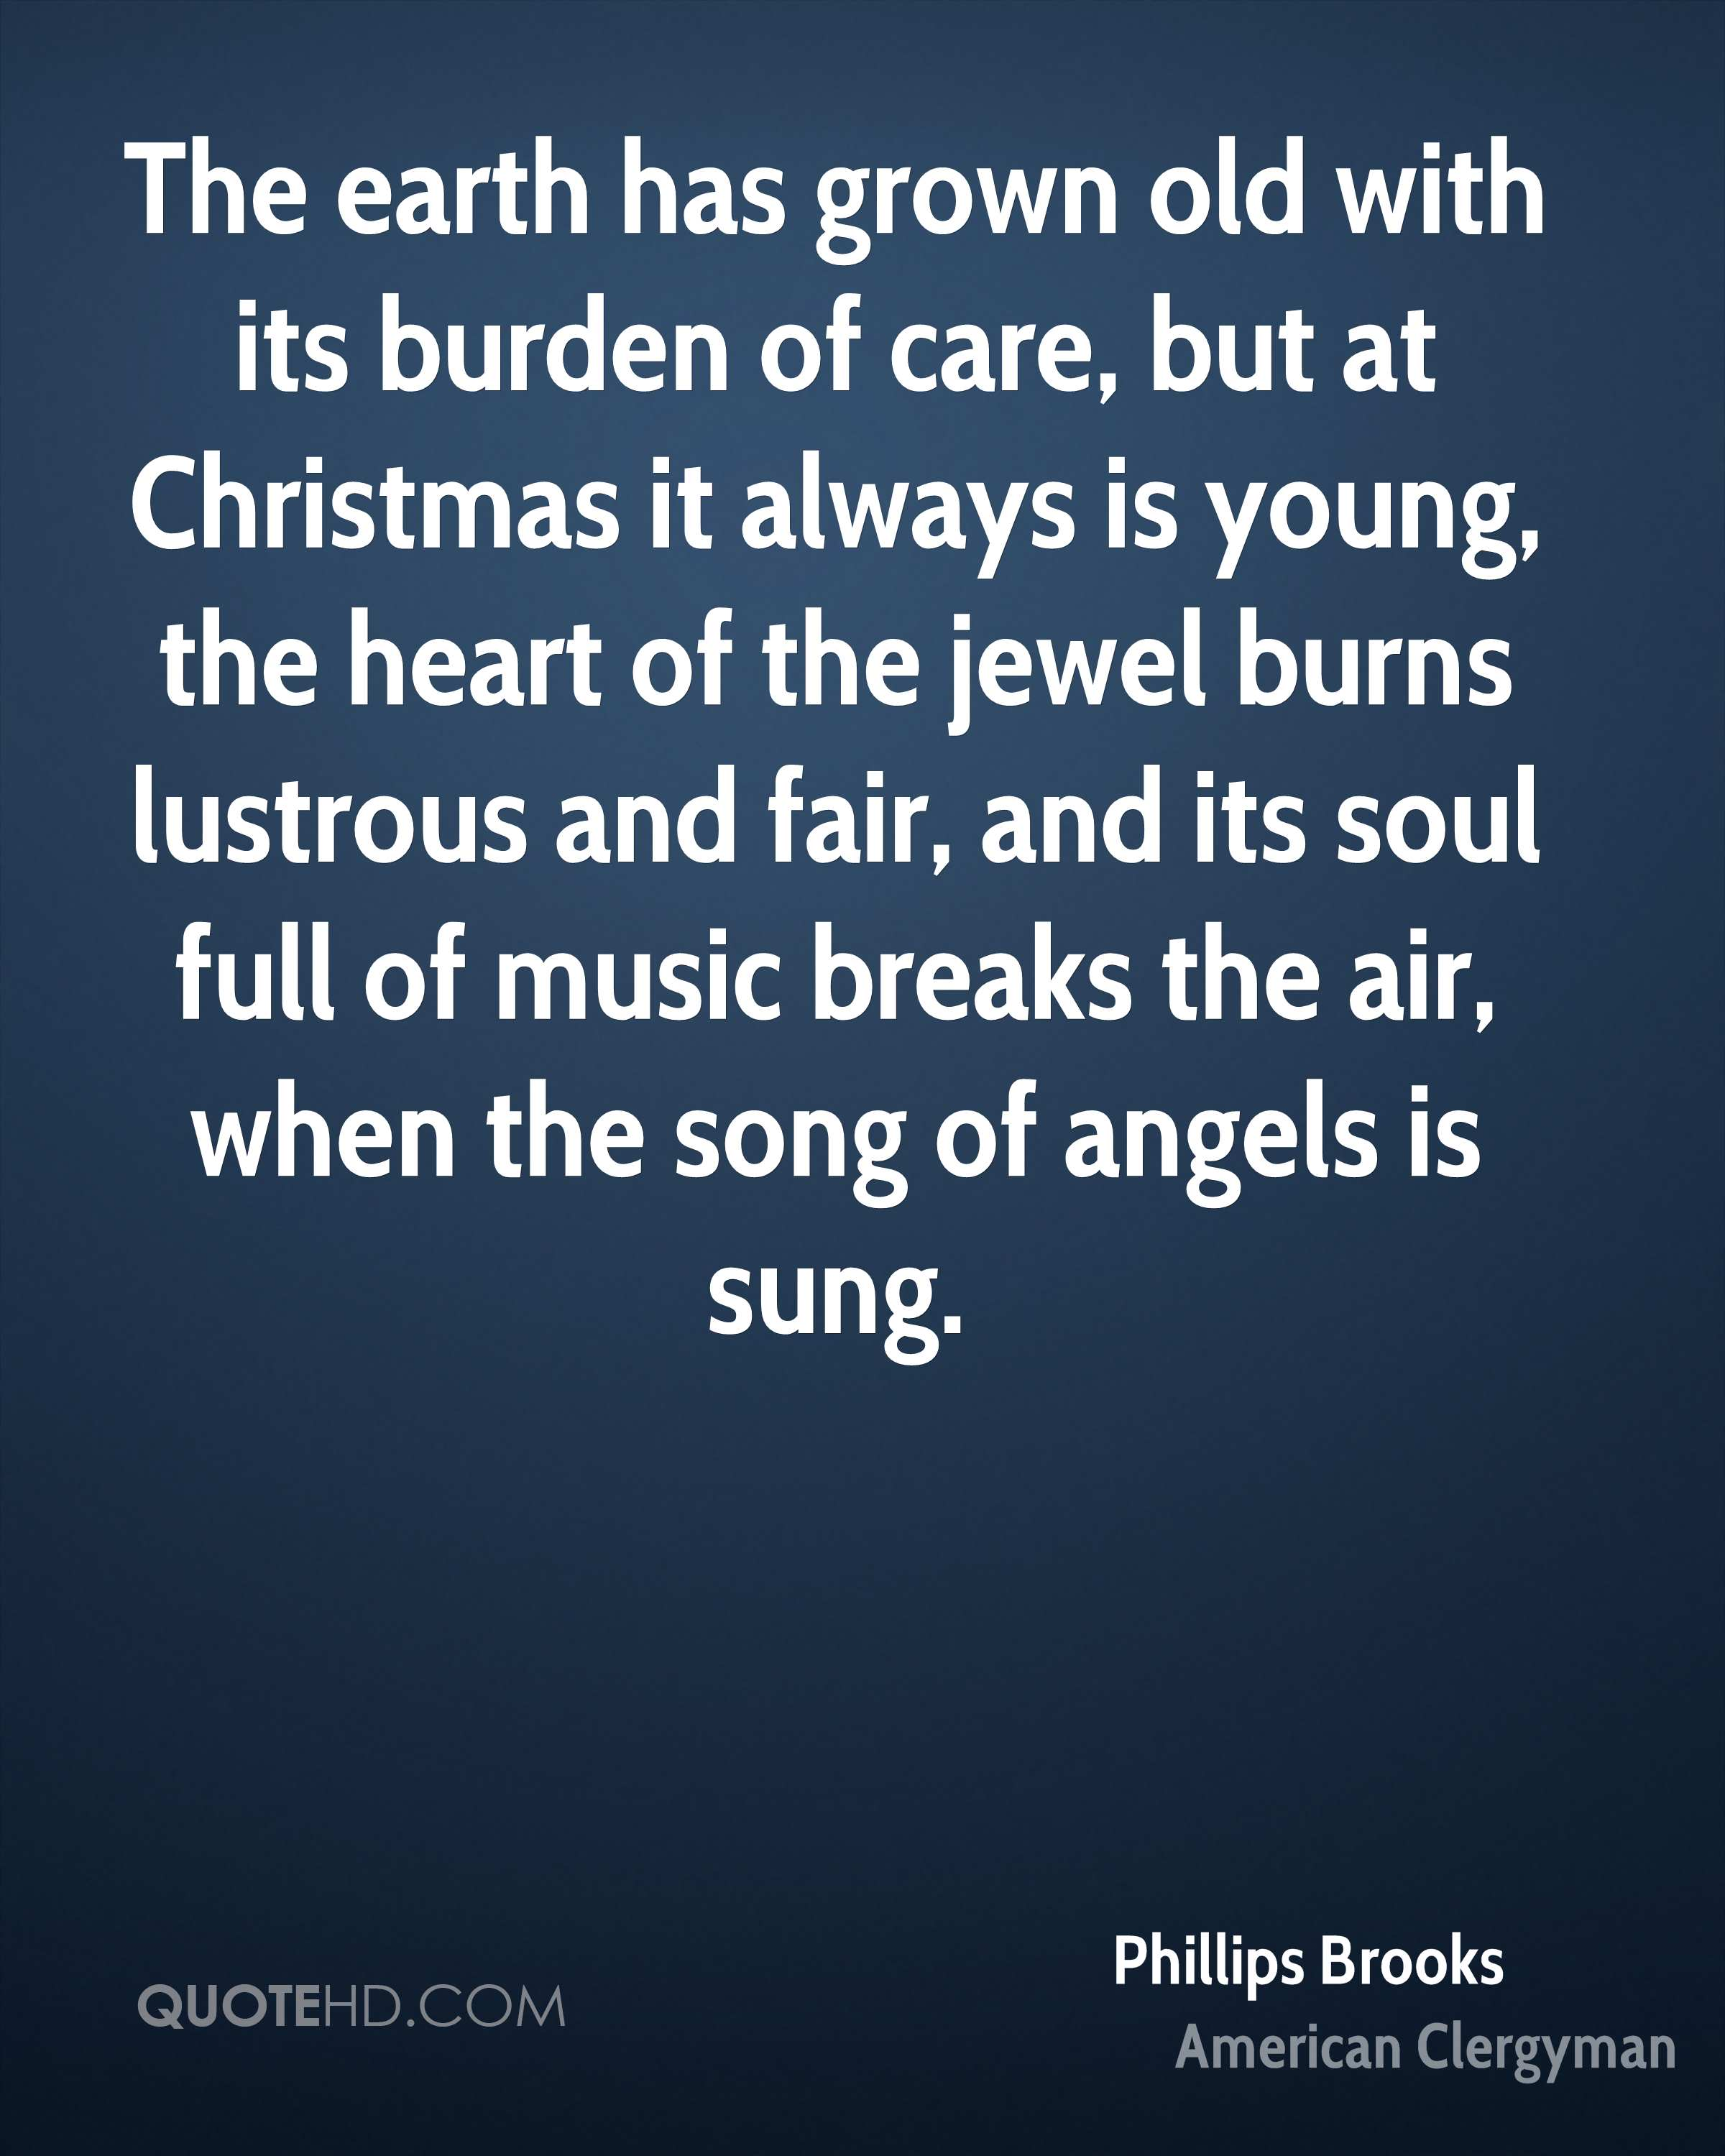 Phillips Brooks Christmas Quotes | QuoteHD